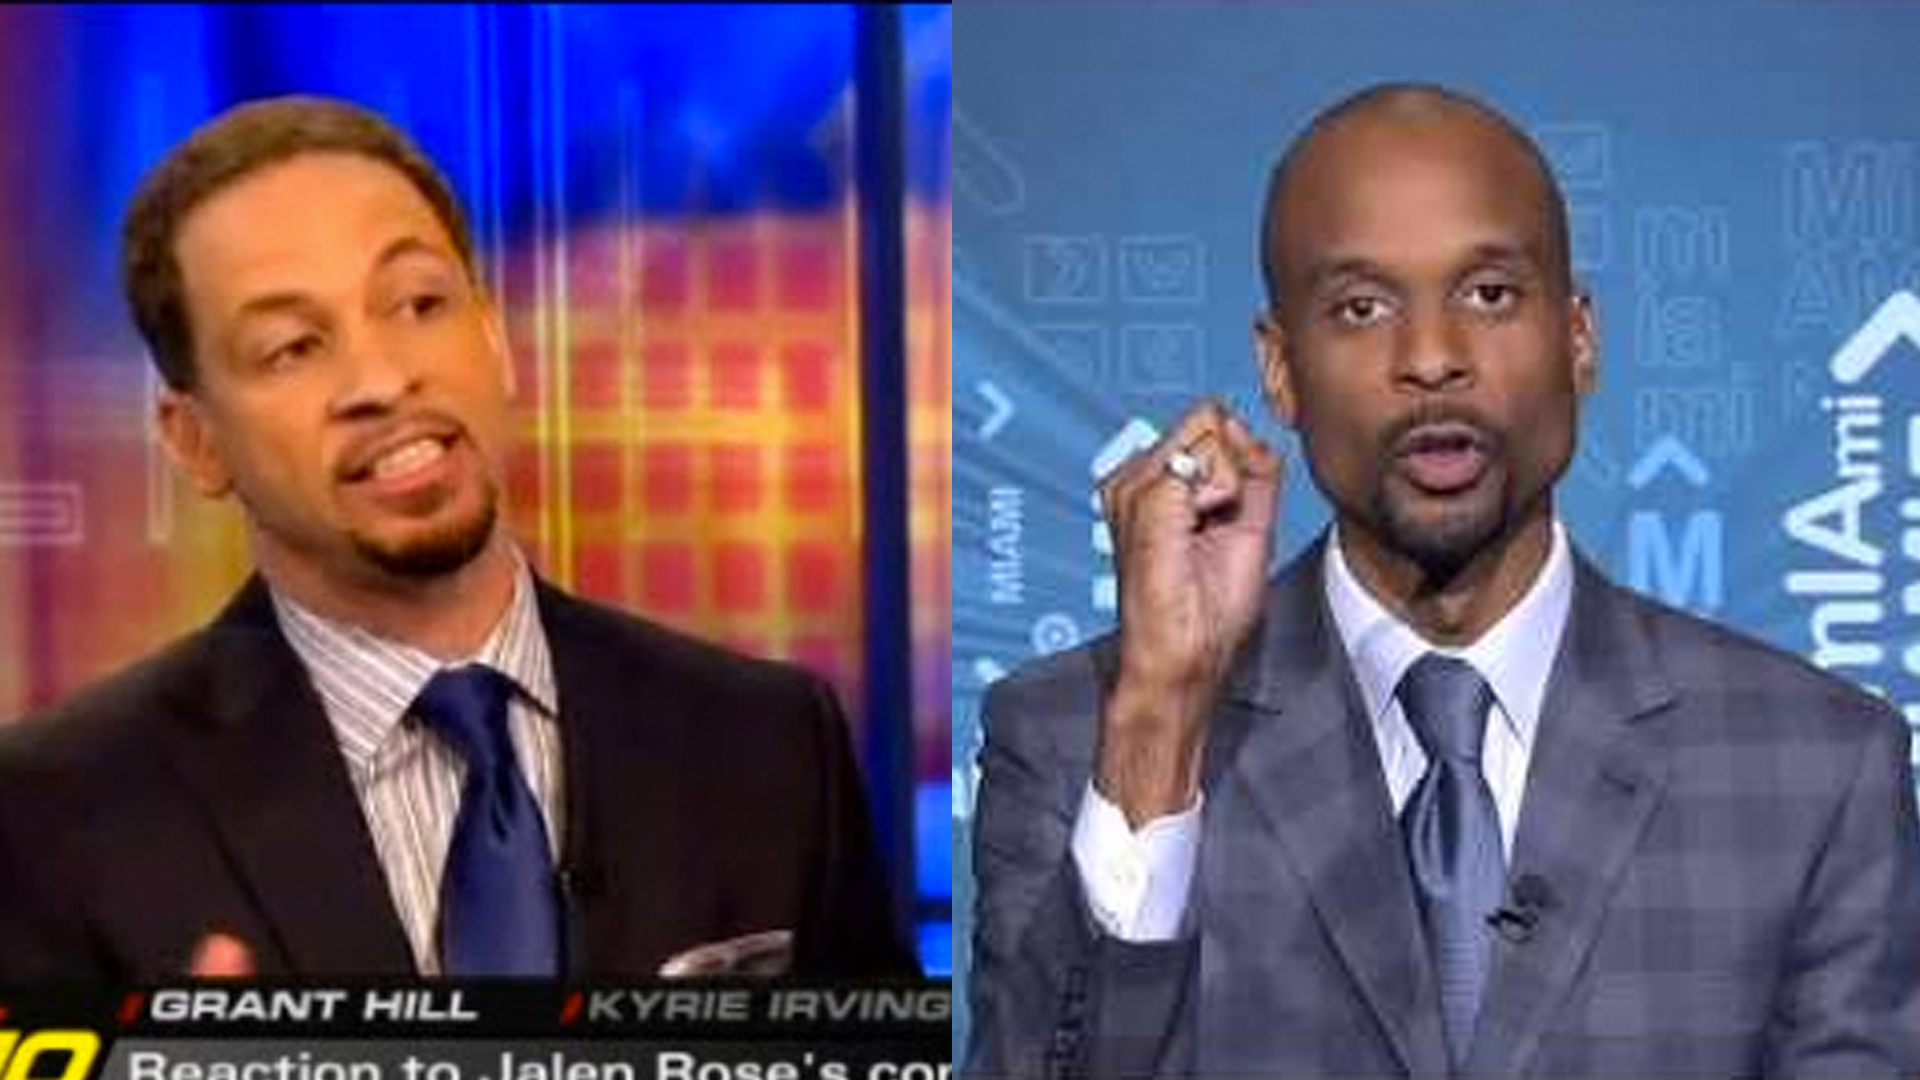 Chris Broussard wages Twitter war with fellow ESPN'er Bomani Jones over abstinence talk